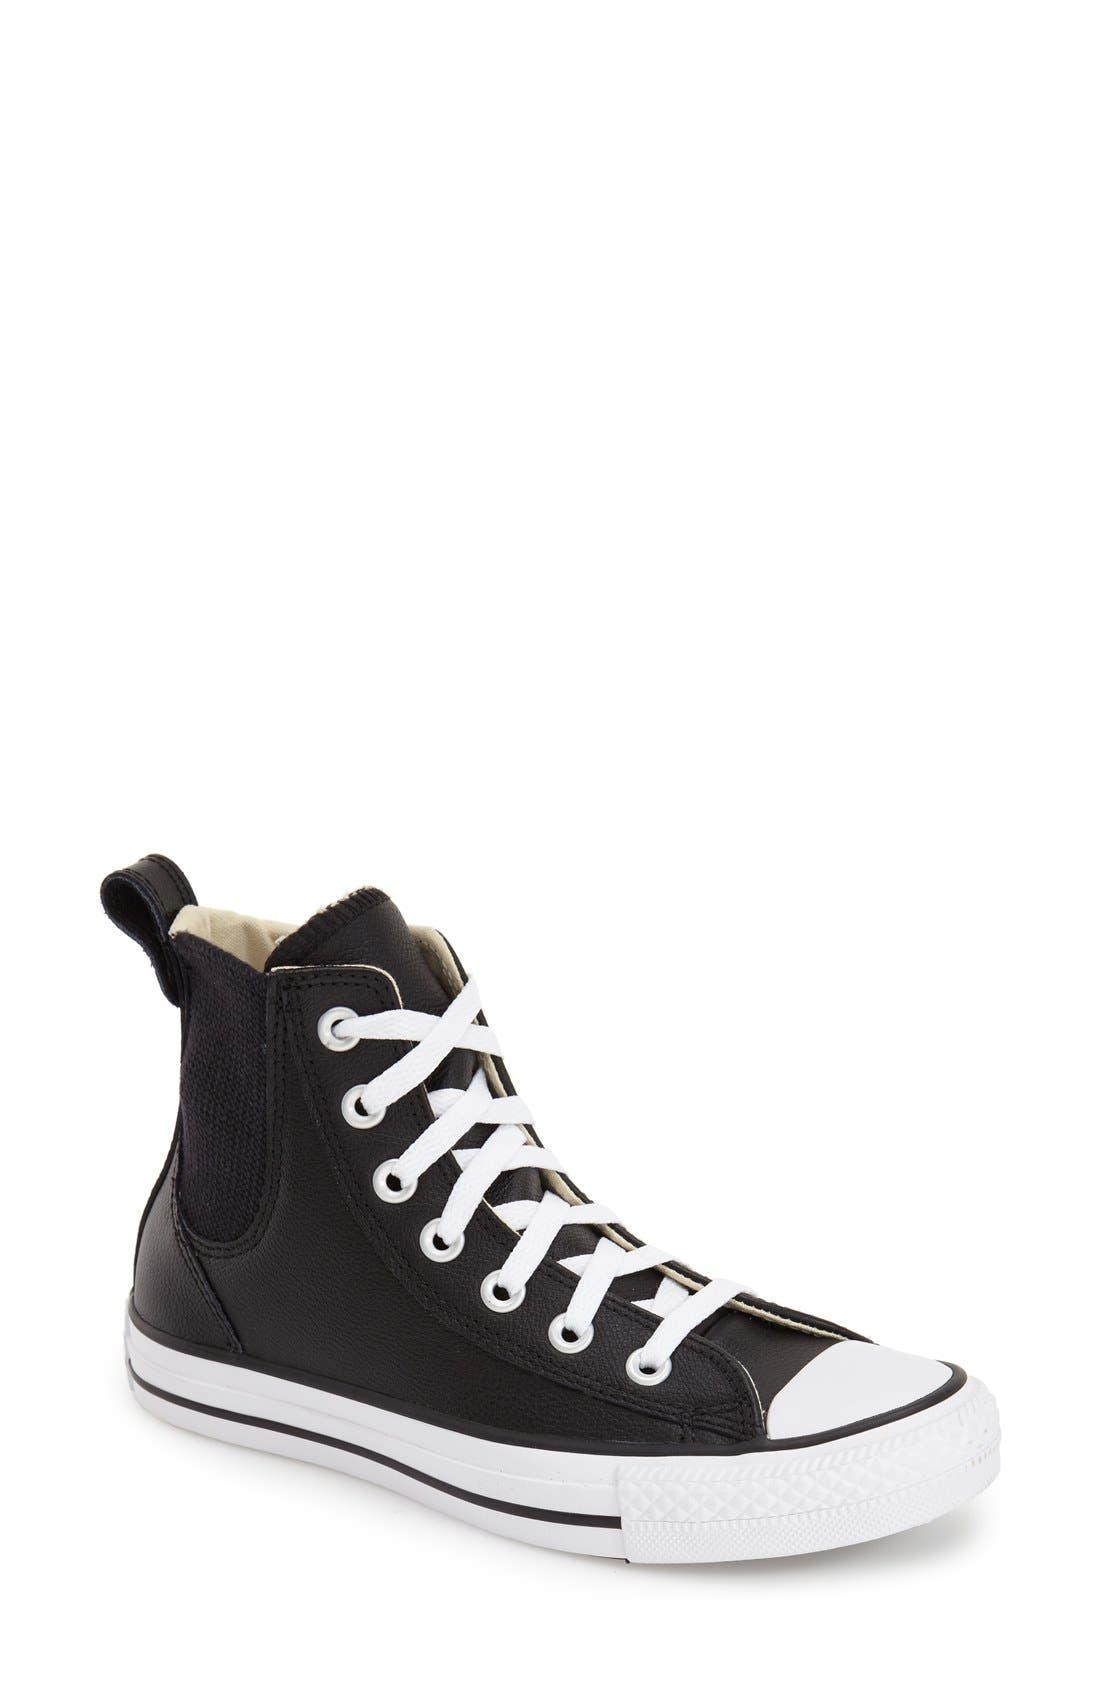 Alternate Image 1 Selected - Converse Chuck Taylor® All Star® 'Chelsee' High Top Sneaker (Women)